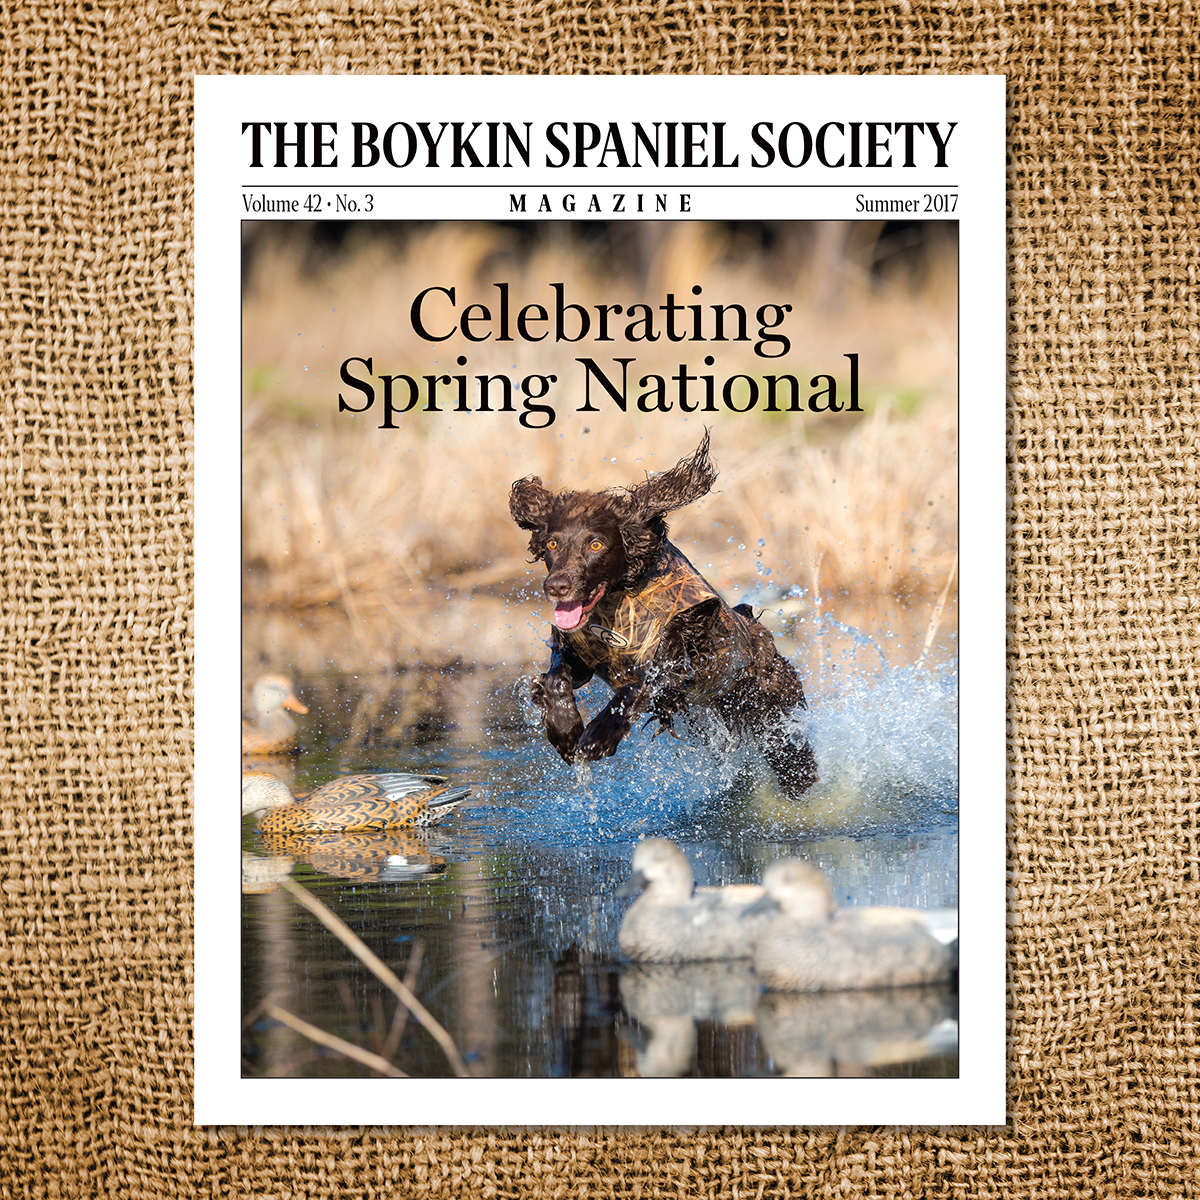 The Boykin Spaniel Society Magazine